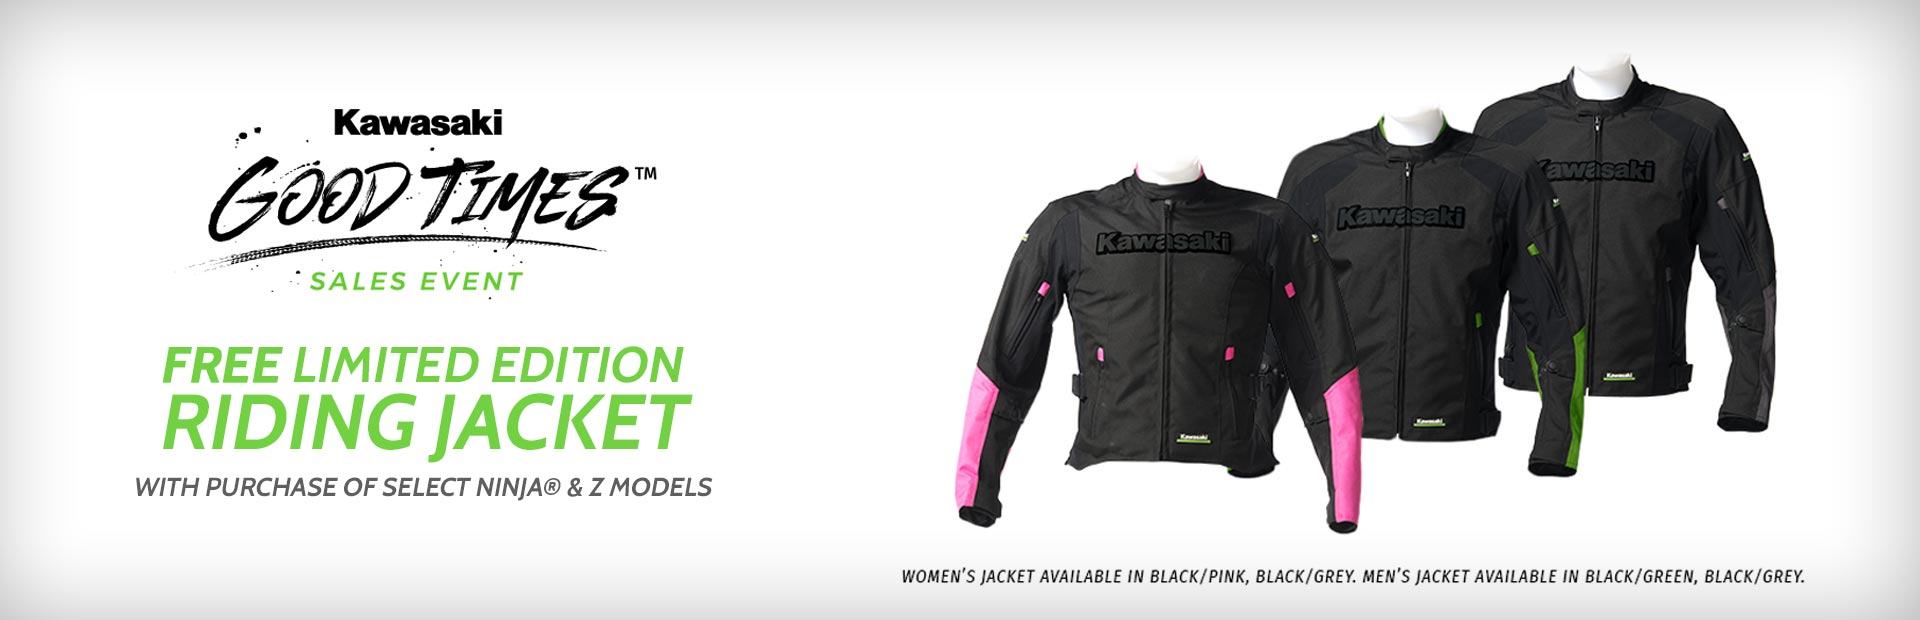 Free Riding Jacket with Select Ninja® & Z Models